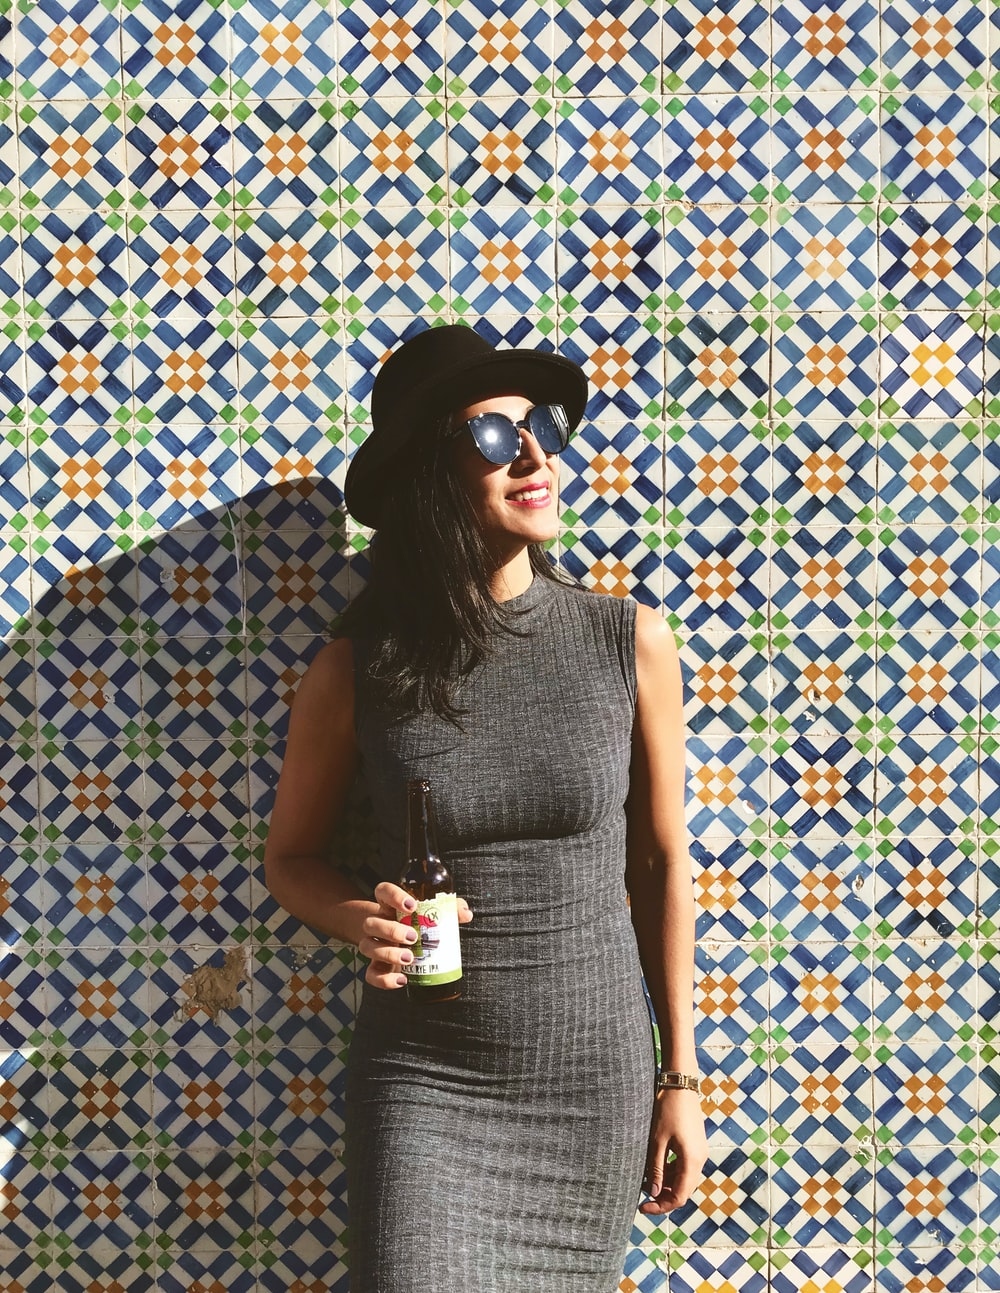 woman standing near the wall while holding beer bottle